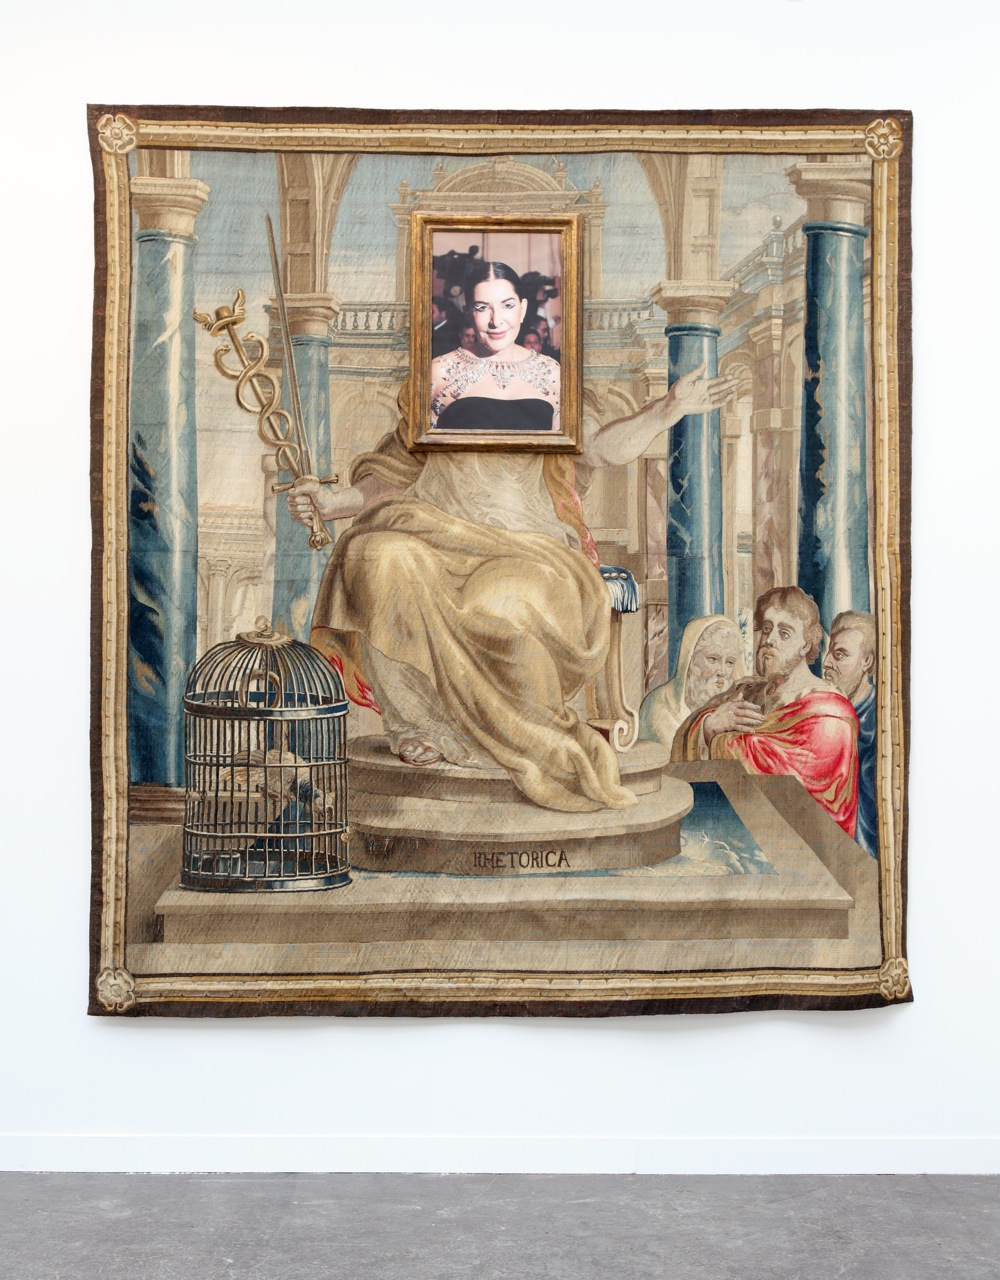 2013, tapestry, inkjet print and metallic embroidery on canvas, frame 265 x 250 x 5 cm